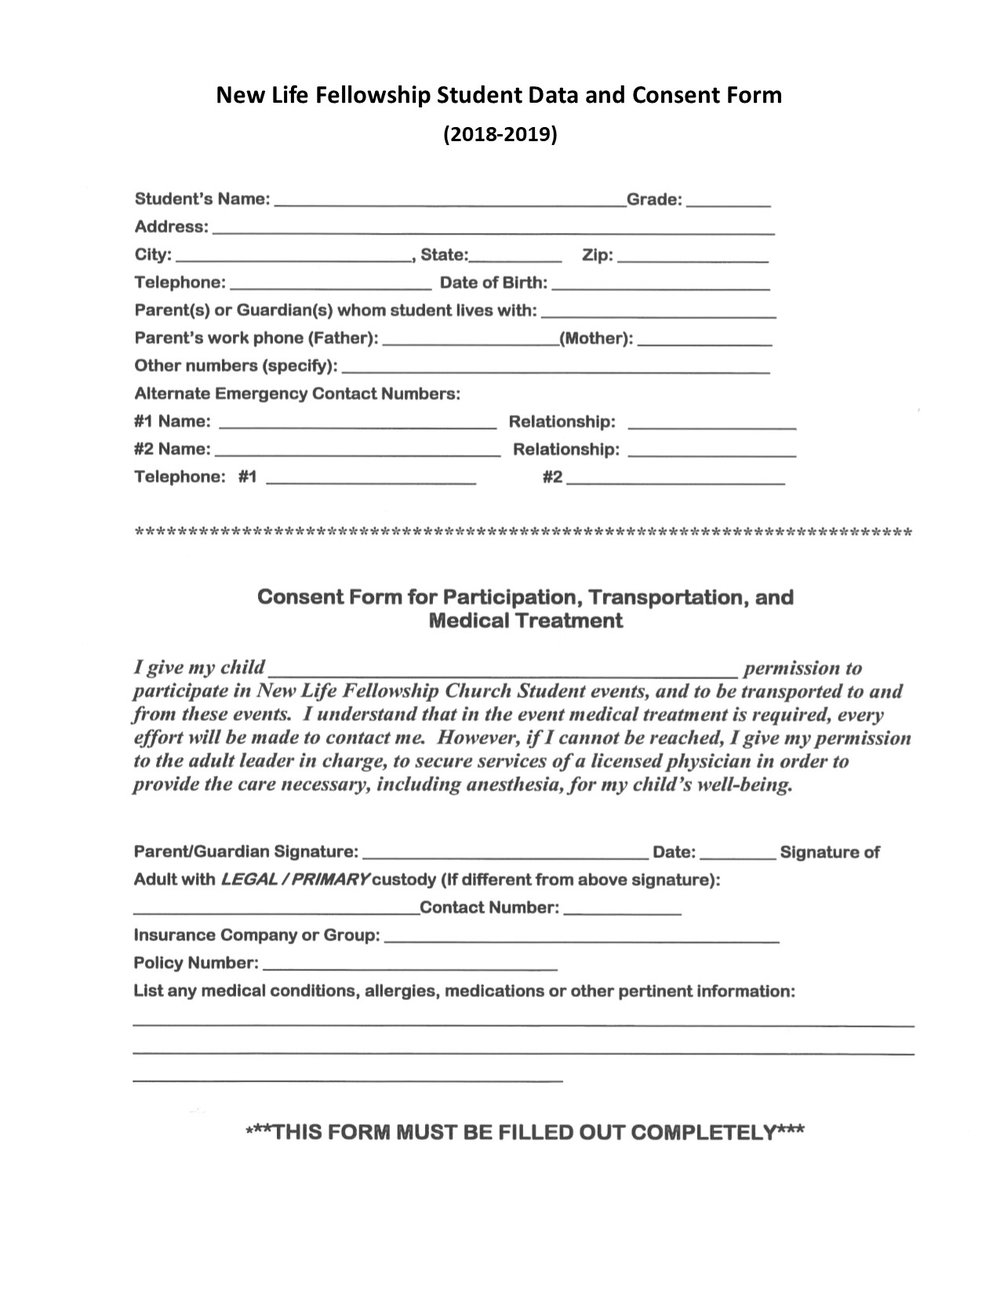 Youth Consent Form 2018-2019.jpg